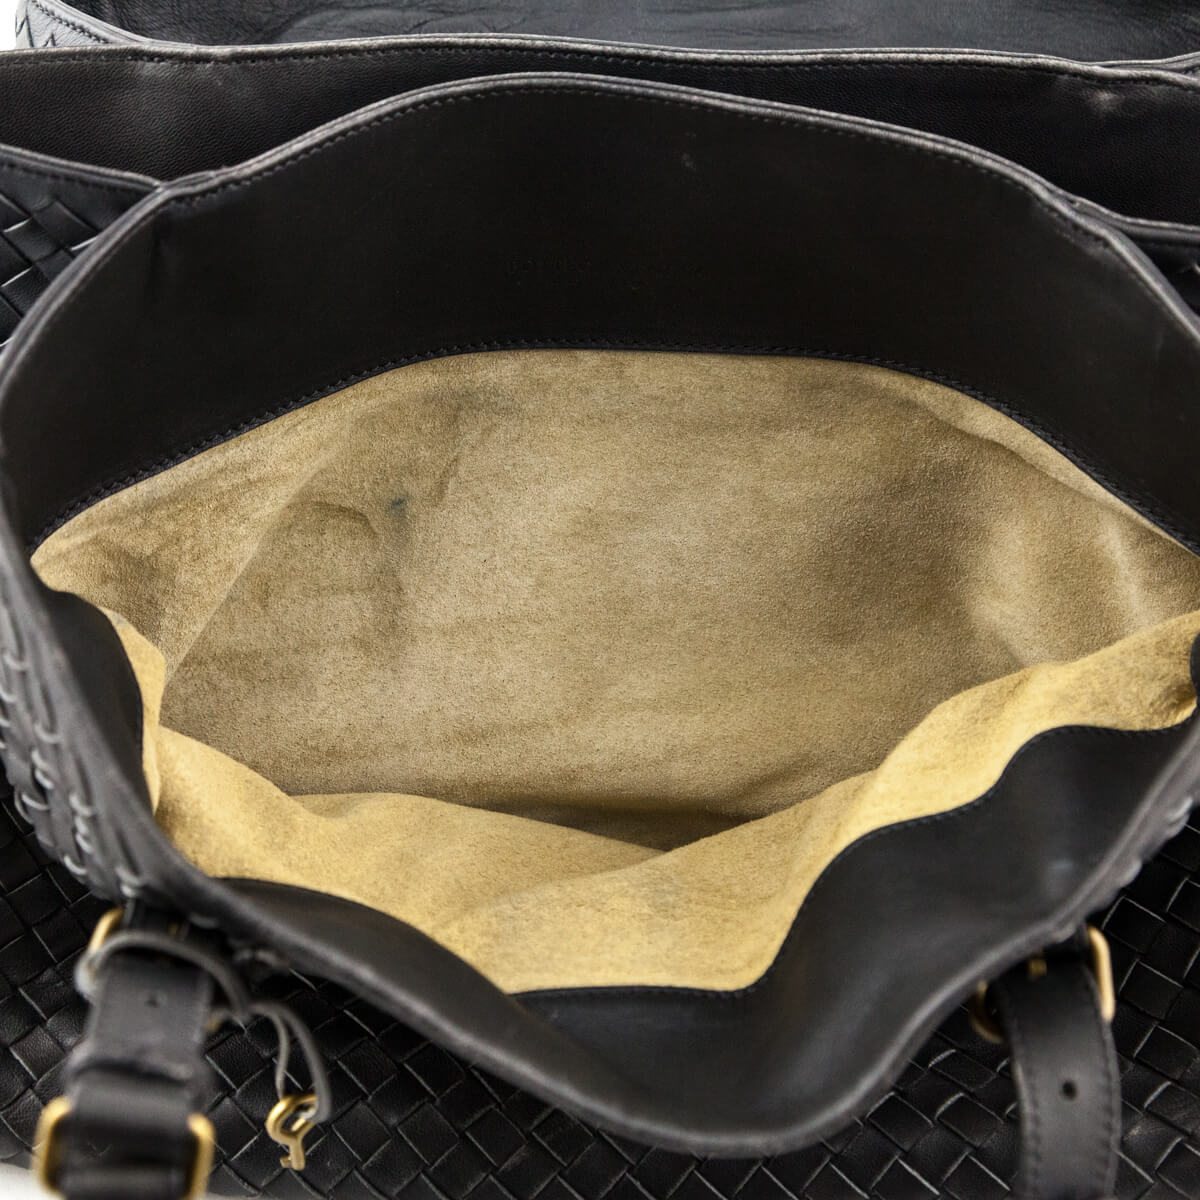 f87ebdcd516 ... Bottega Veneta Ferro Intrecciato Large Roma Bag - LOVE that BAG - Preowned  Authentic Designer Handbags ...